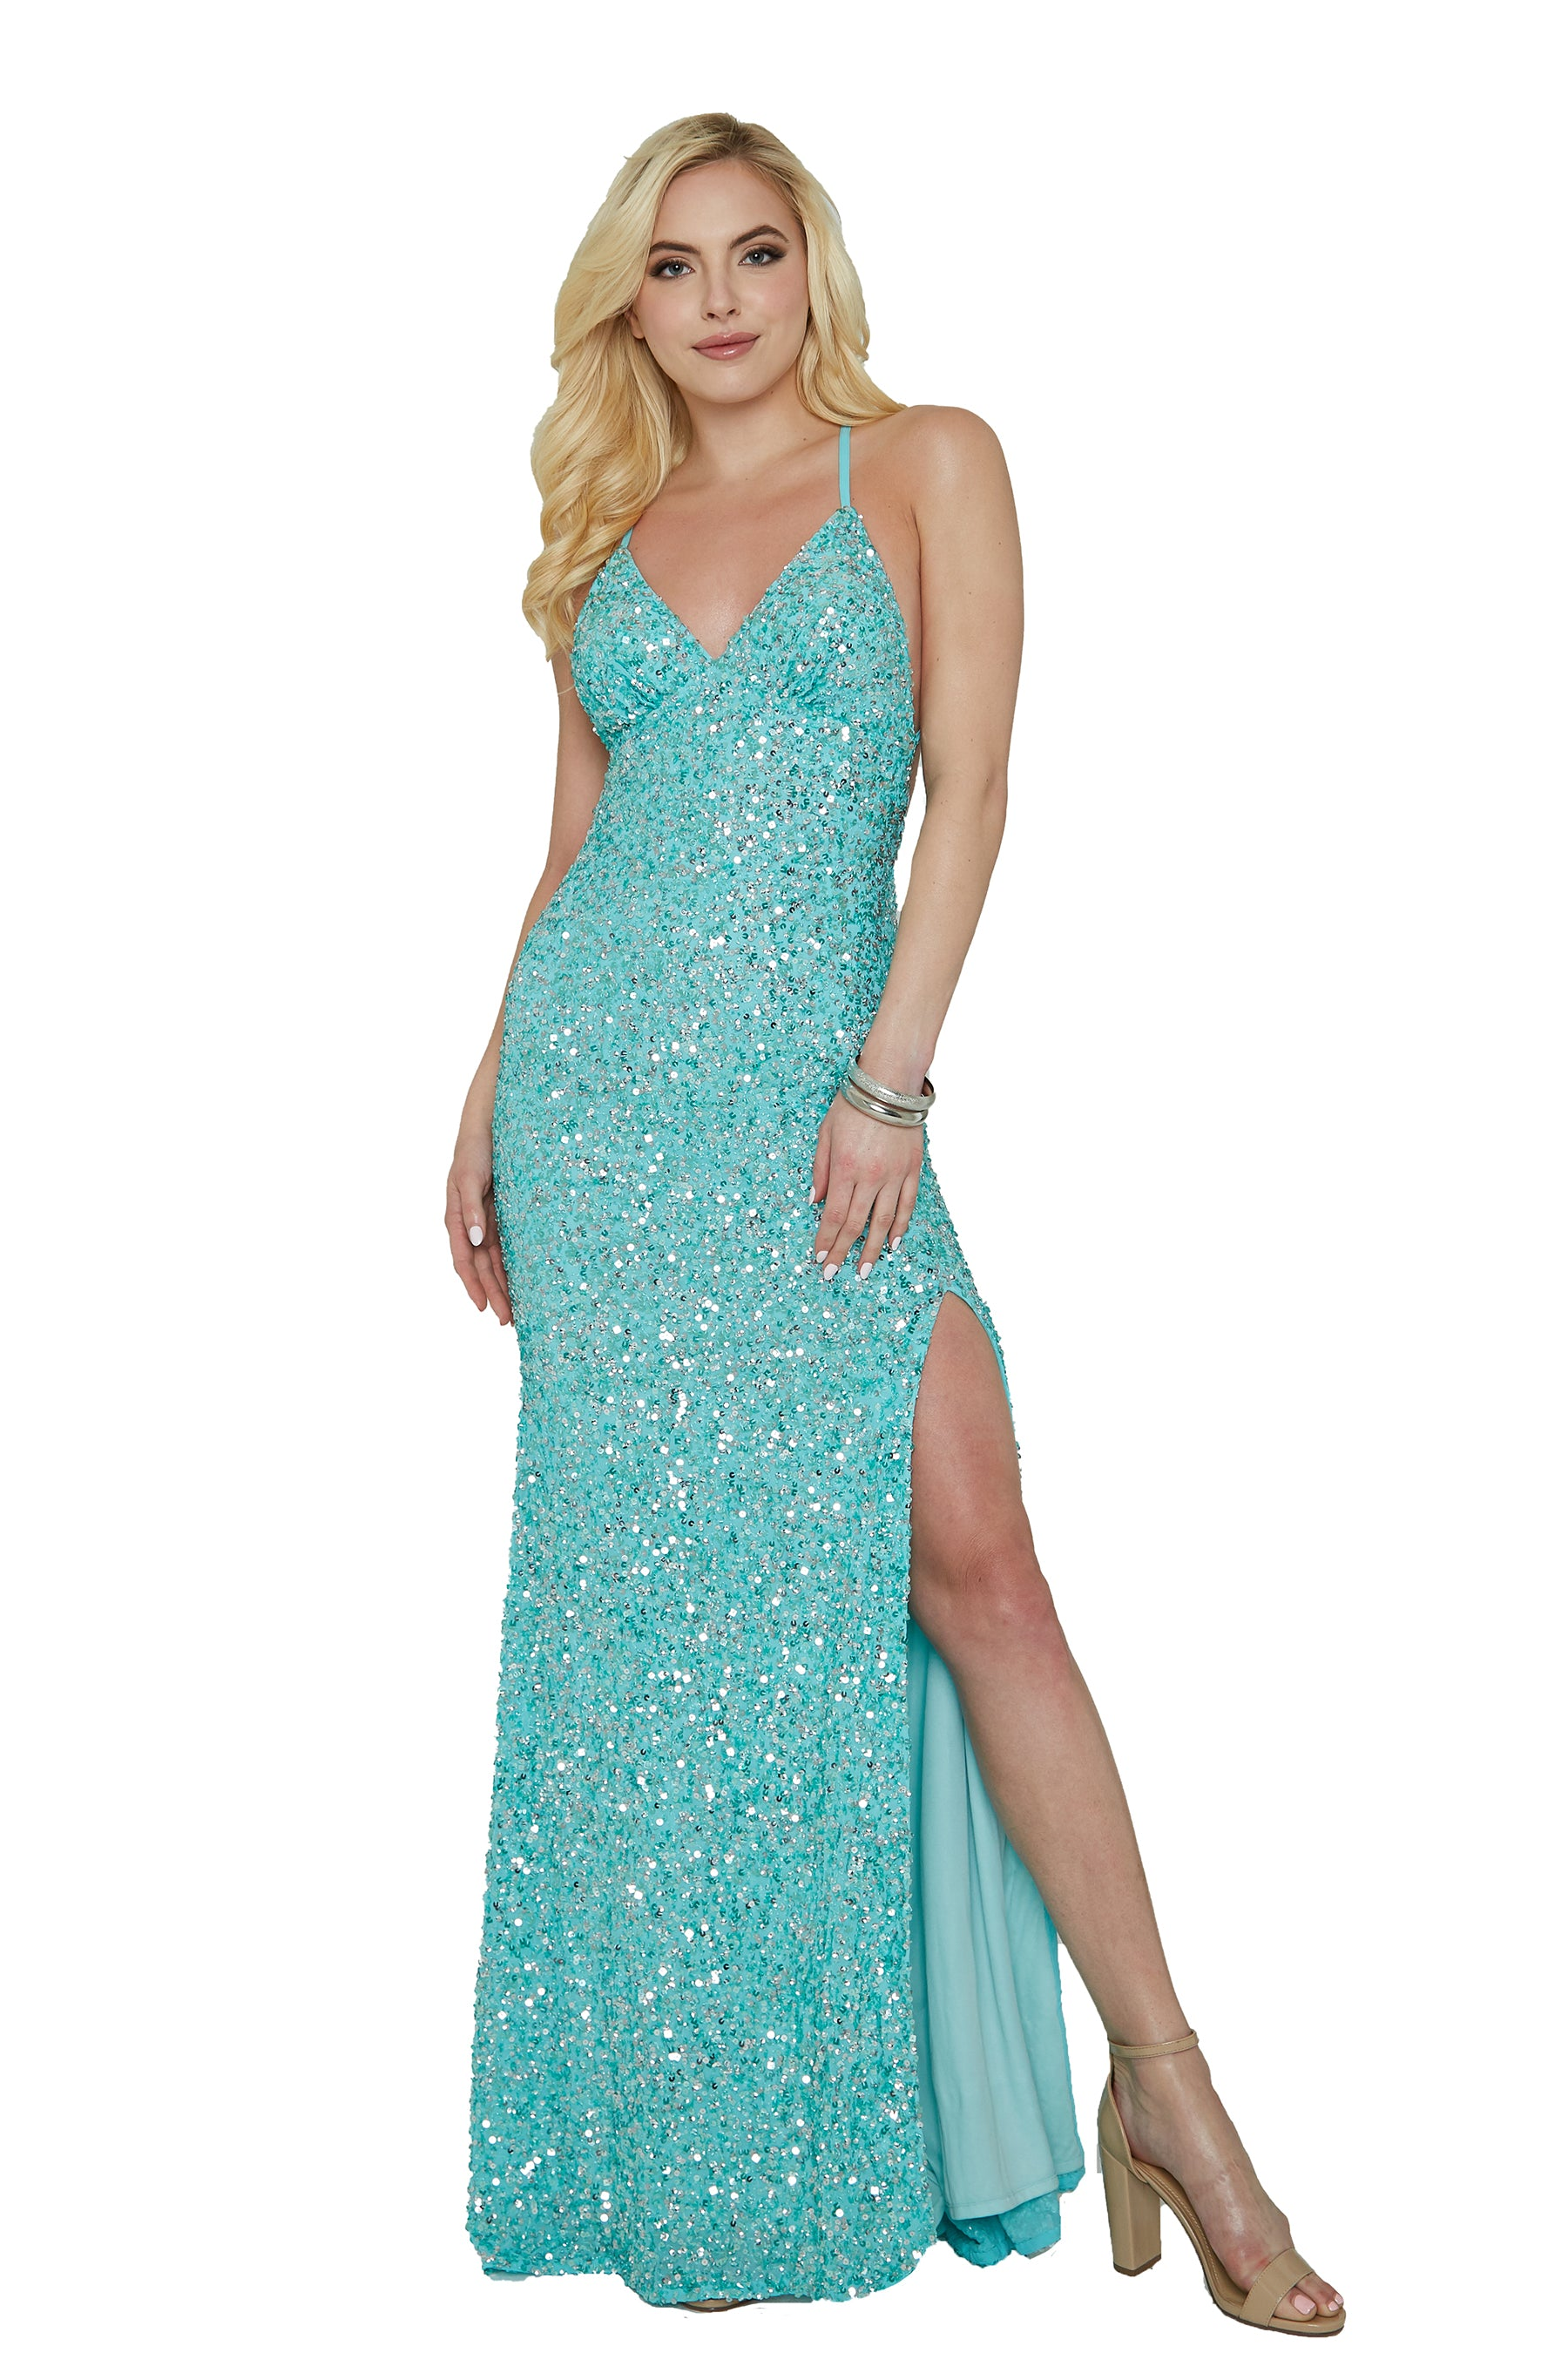 Aleta sequins turquoise blue prom dress